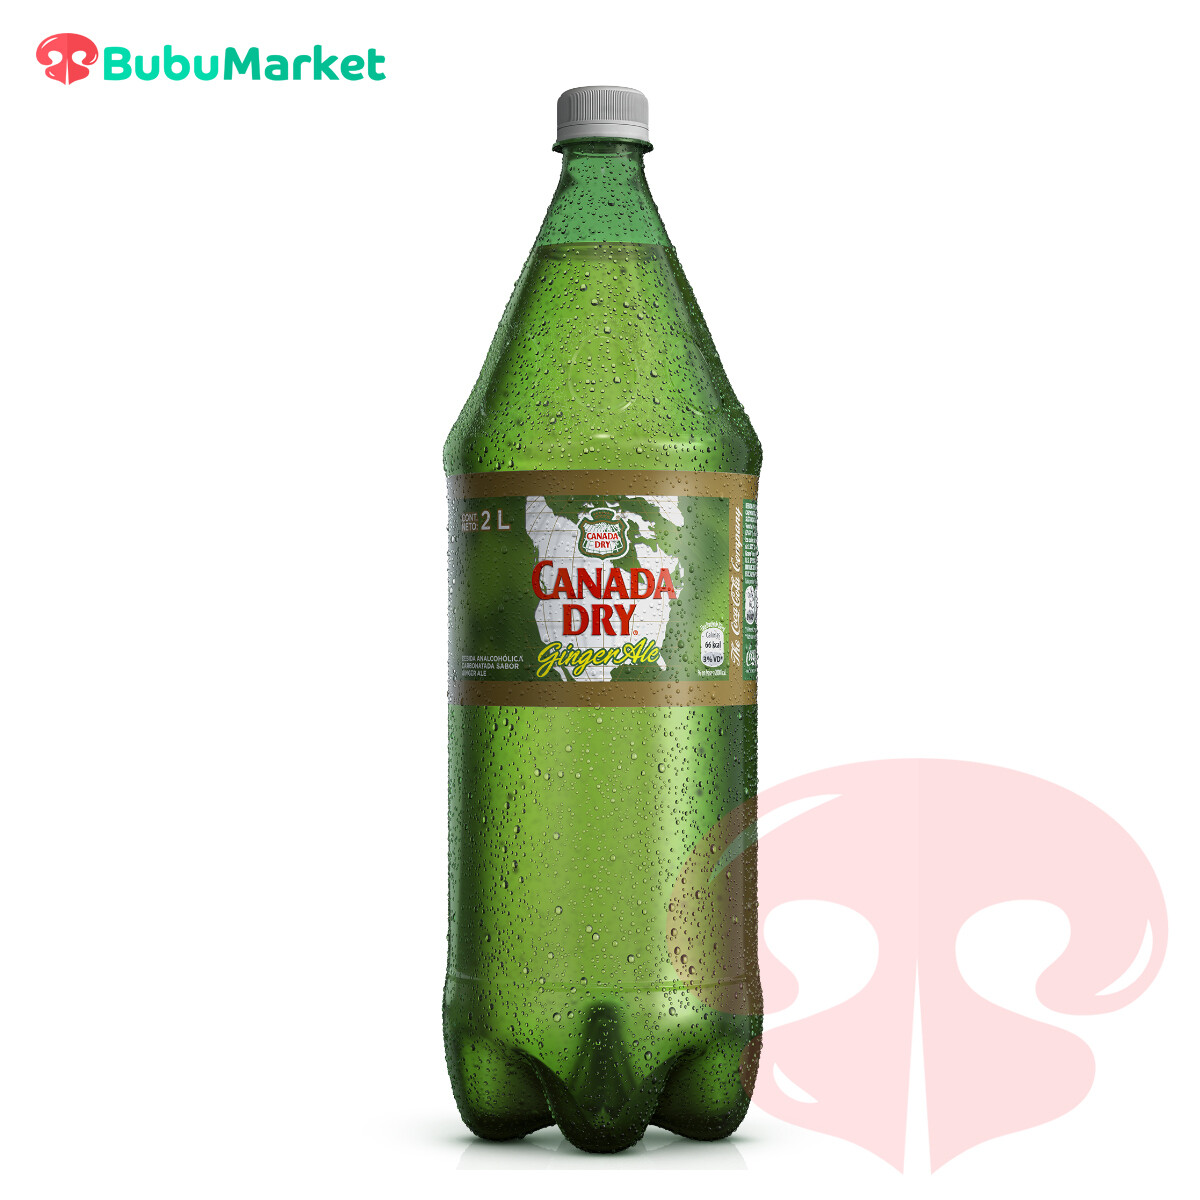 CANADA DRY GINGER ALE 2 L.